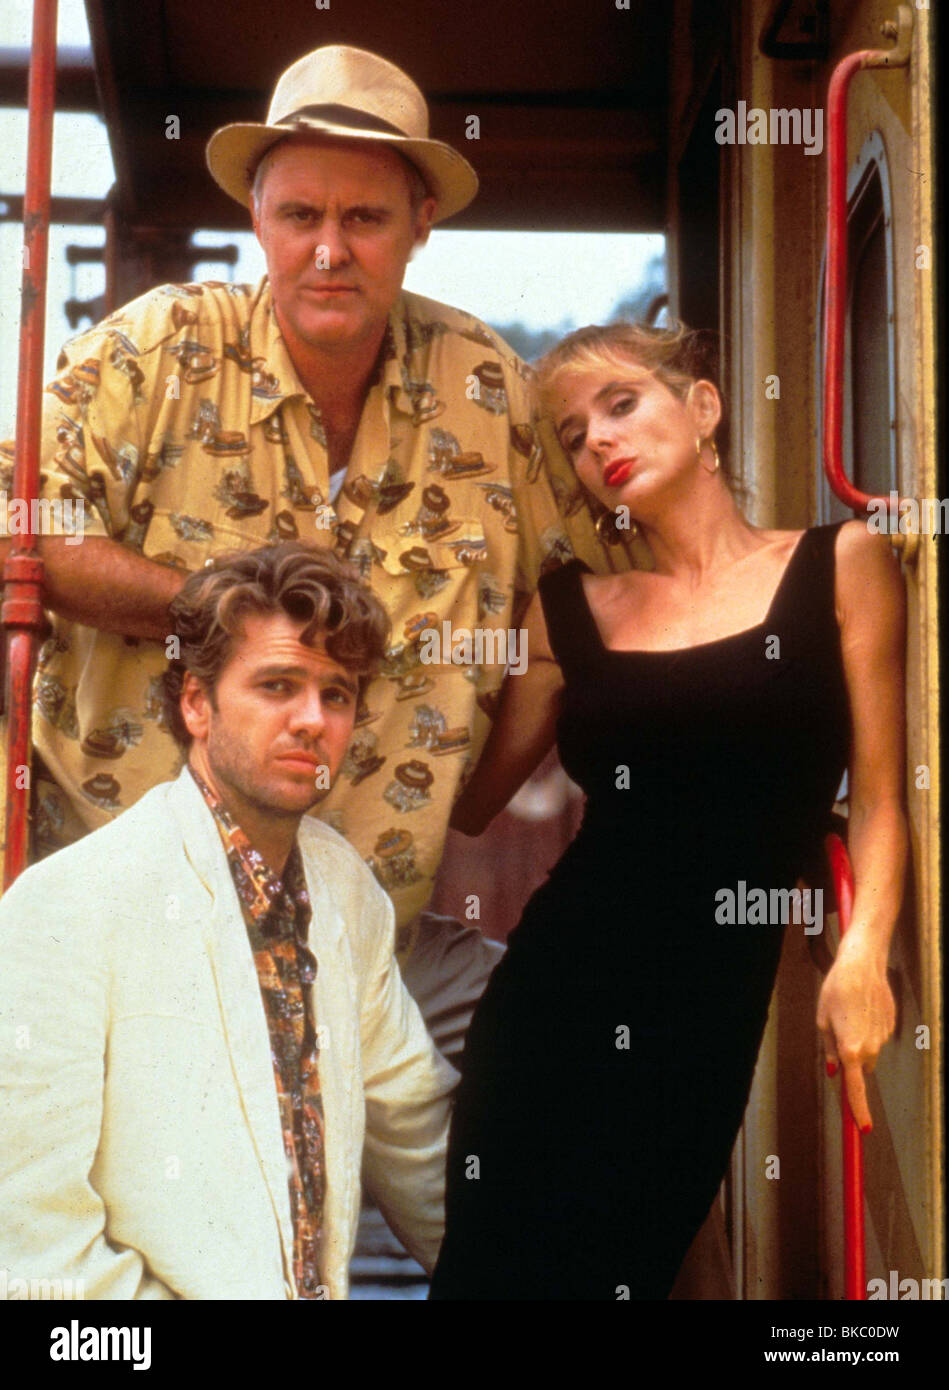 THE WRONG MAN (TVM) JOHN LITHGOW,ROSANNA ARQUETTE,KEVIN ANDERSON WRM1 001 Stock Photo